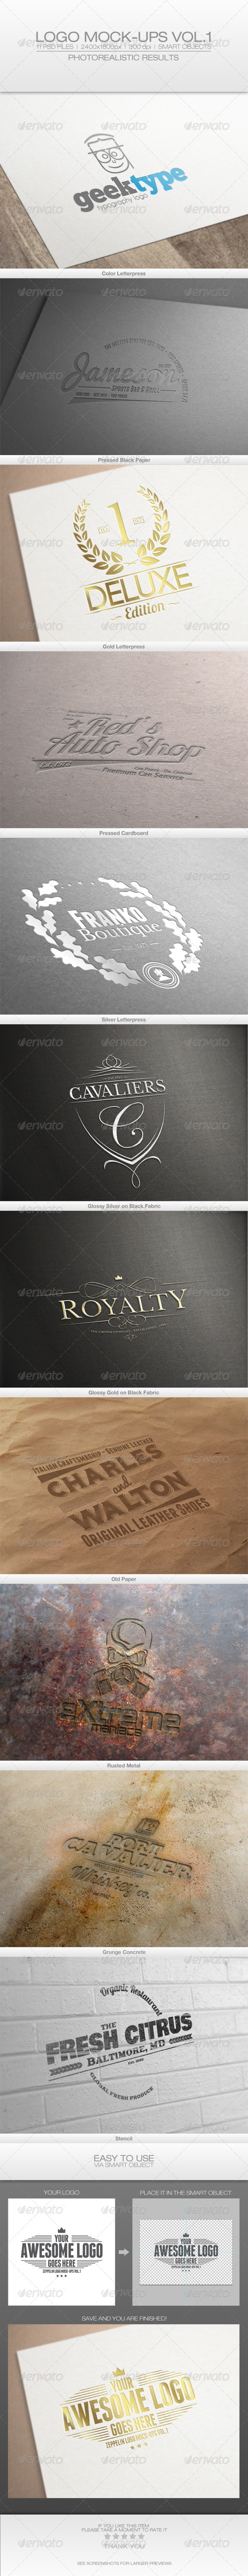 GraphicRiver Logo Mock-ups Vol.1 6461097